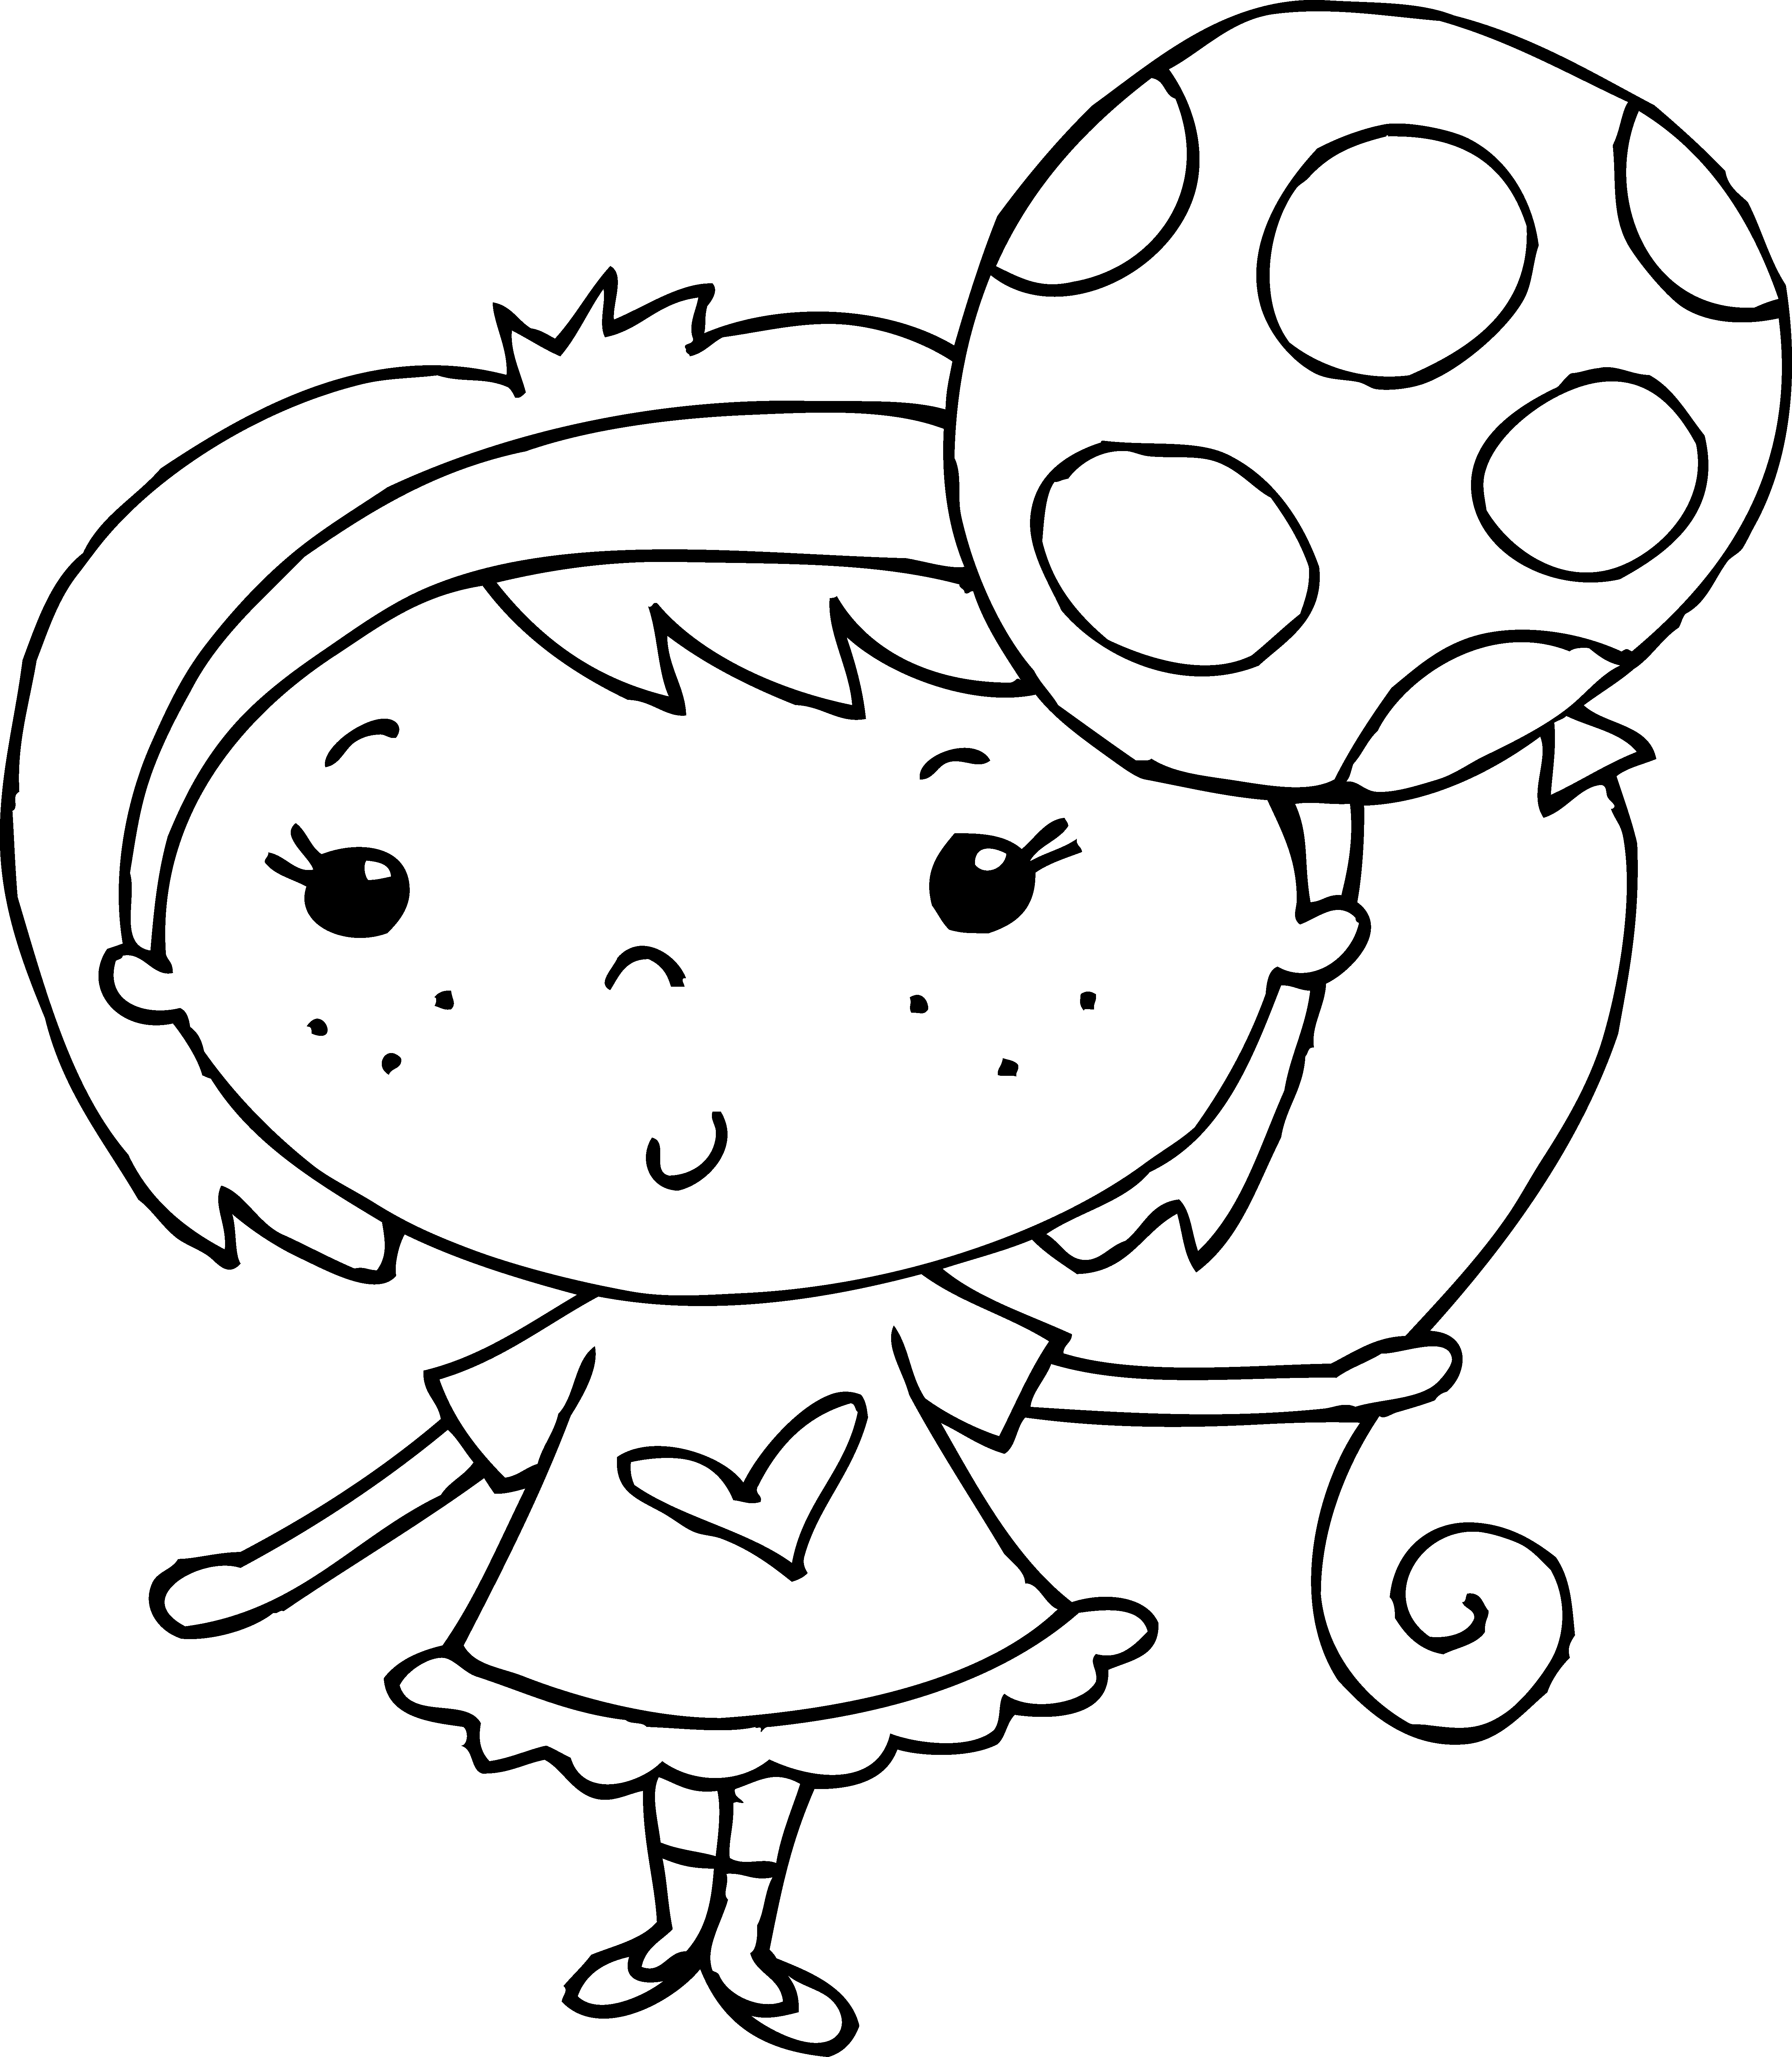 clip art coloring pages coloring page of girl with balloon free clip art pages coloring clip art